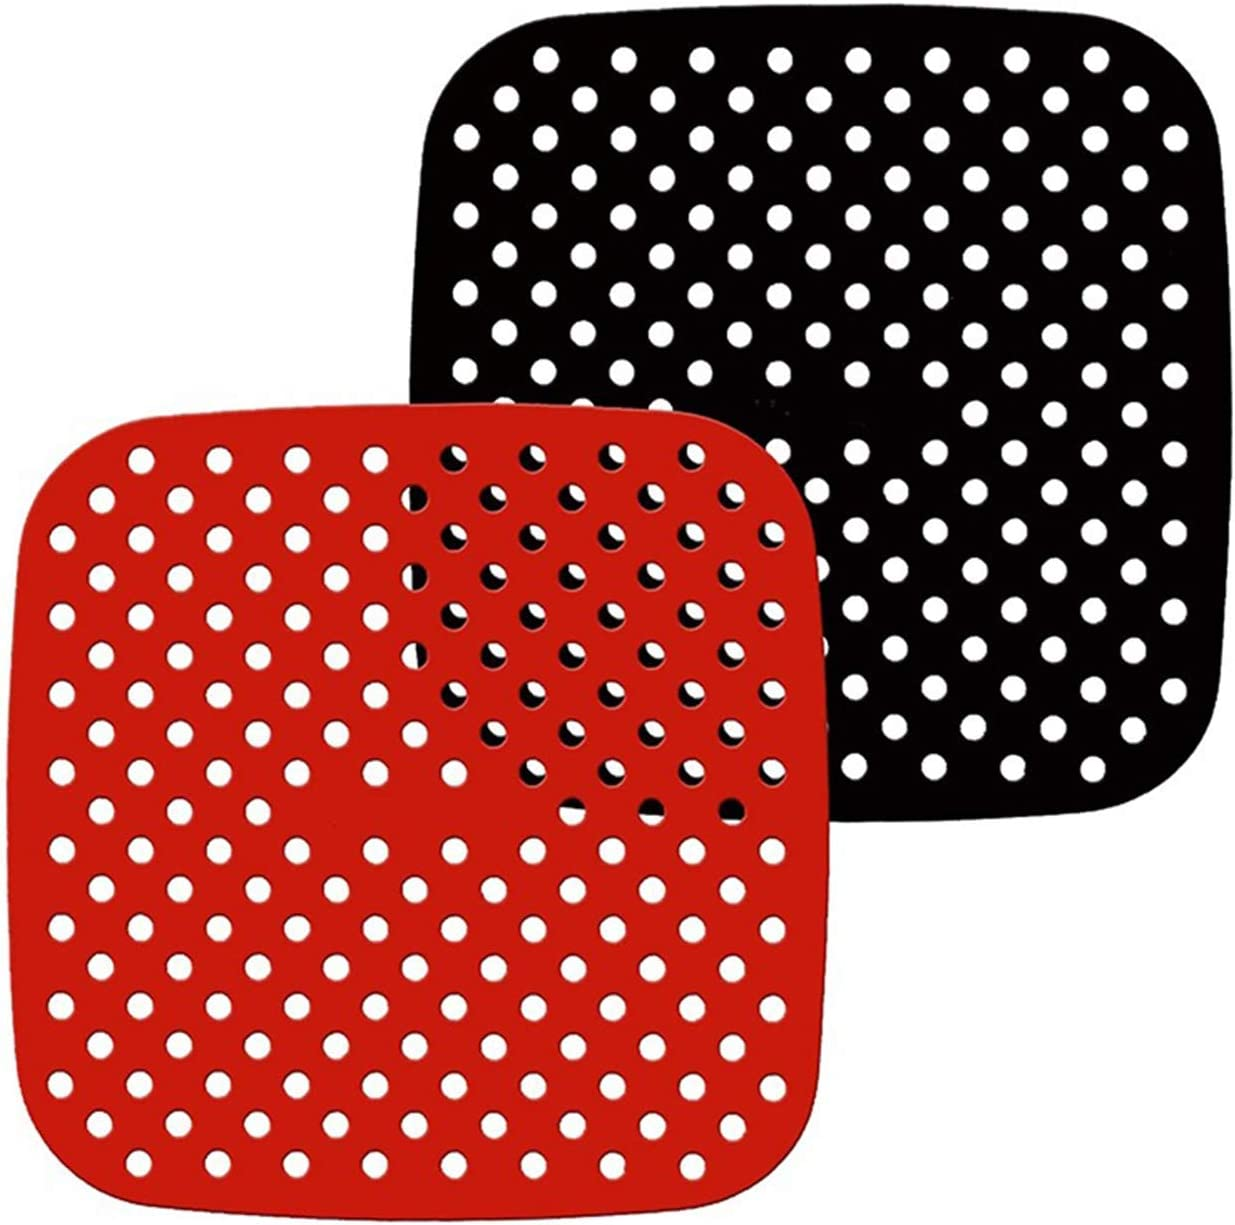 Reusable Air Fryer Liners Square, Non-Stick Silicone Air Fryer Basket Mats Air Fryer Accessories For Air Fryer Deep Fryer & Oven And More, 8.5 Or 7.5 In Or Diy Size, Bpa Free (2-Pack) (8.5 IN)